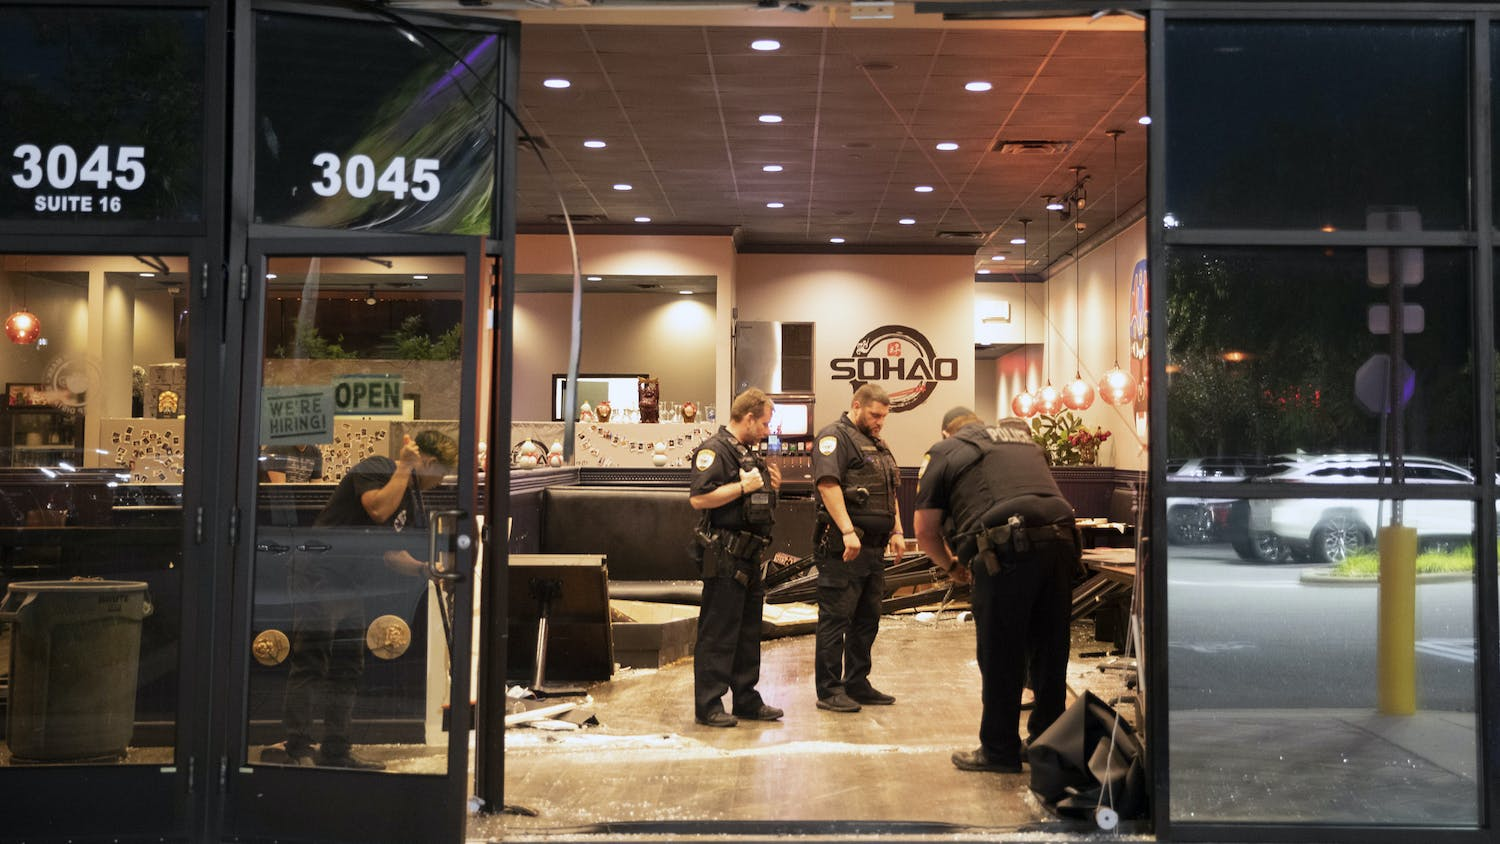 Police officers investigate the area and help clean broken glass from the floor of SOHAO Cafe & Gator Suyaki after a blue Dodge was driven through the front of the restaurant on Monday, May 17, 2021.